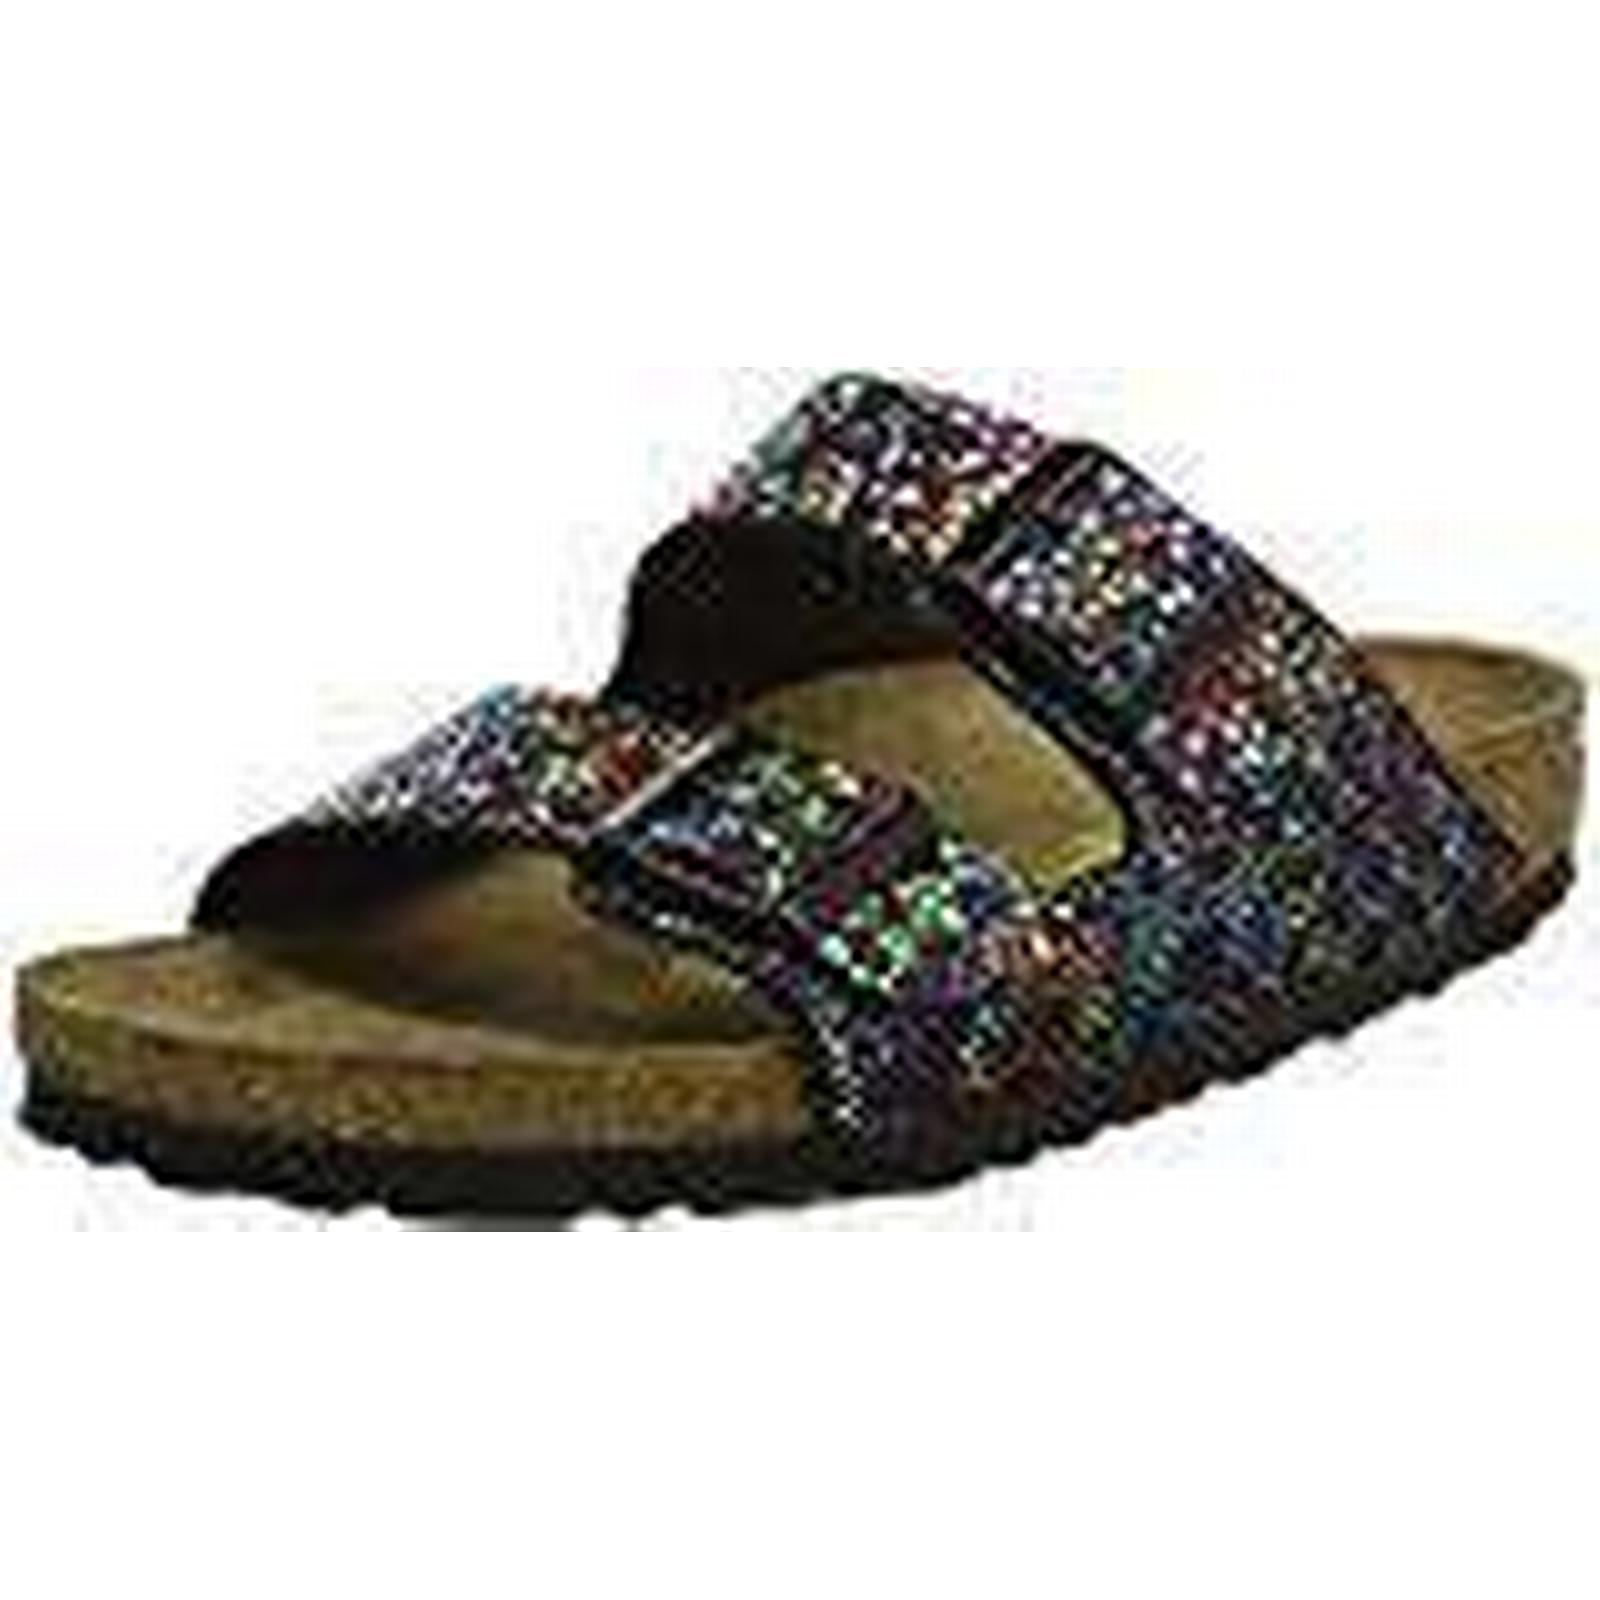 Birkenstock Arizona, Women's Heels Sandals Open Toe Sandals, Multicolour (Multicolore UK Oriental Mosaic Black), 7 UK (Multicolore (40 EU) e20936